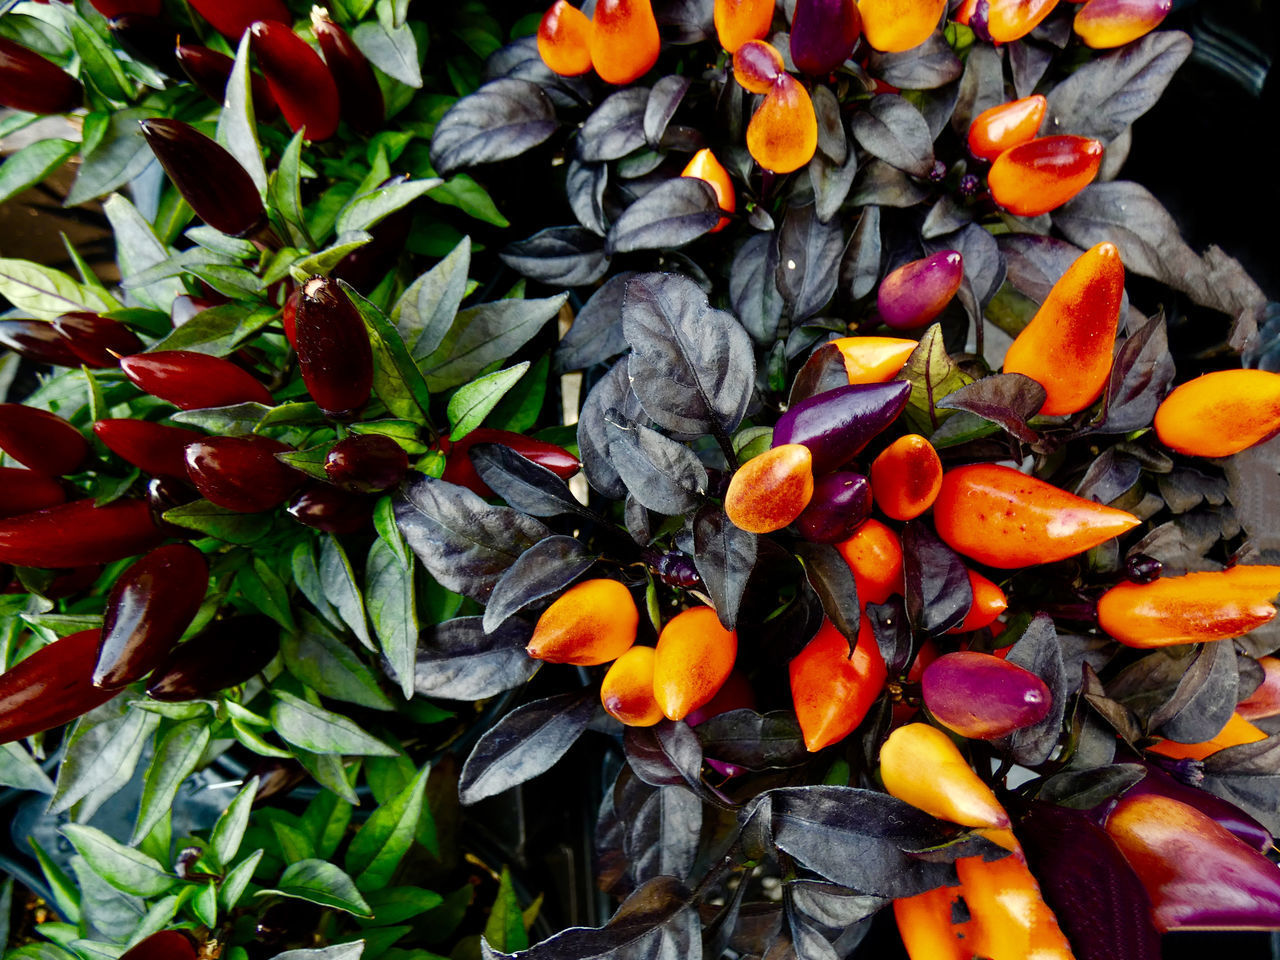 HIGH ANGLE VIEW OF ORANGE PLANTS IN WATER